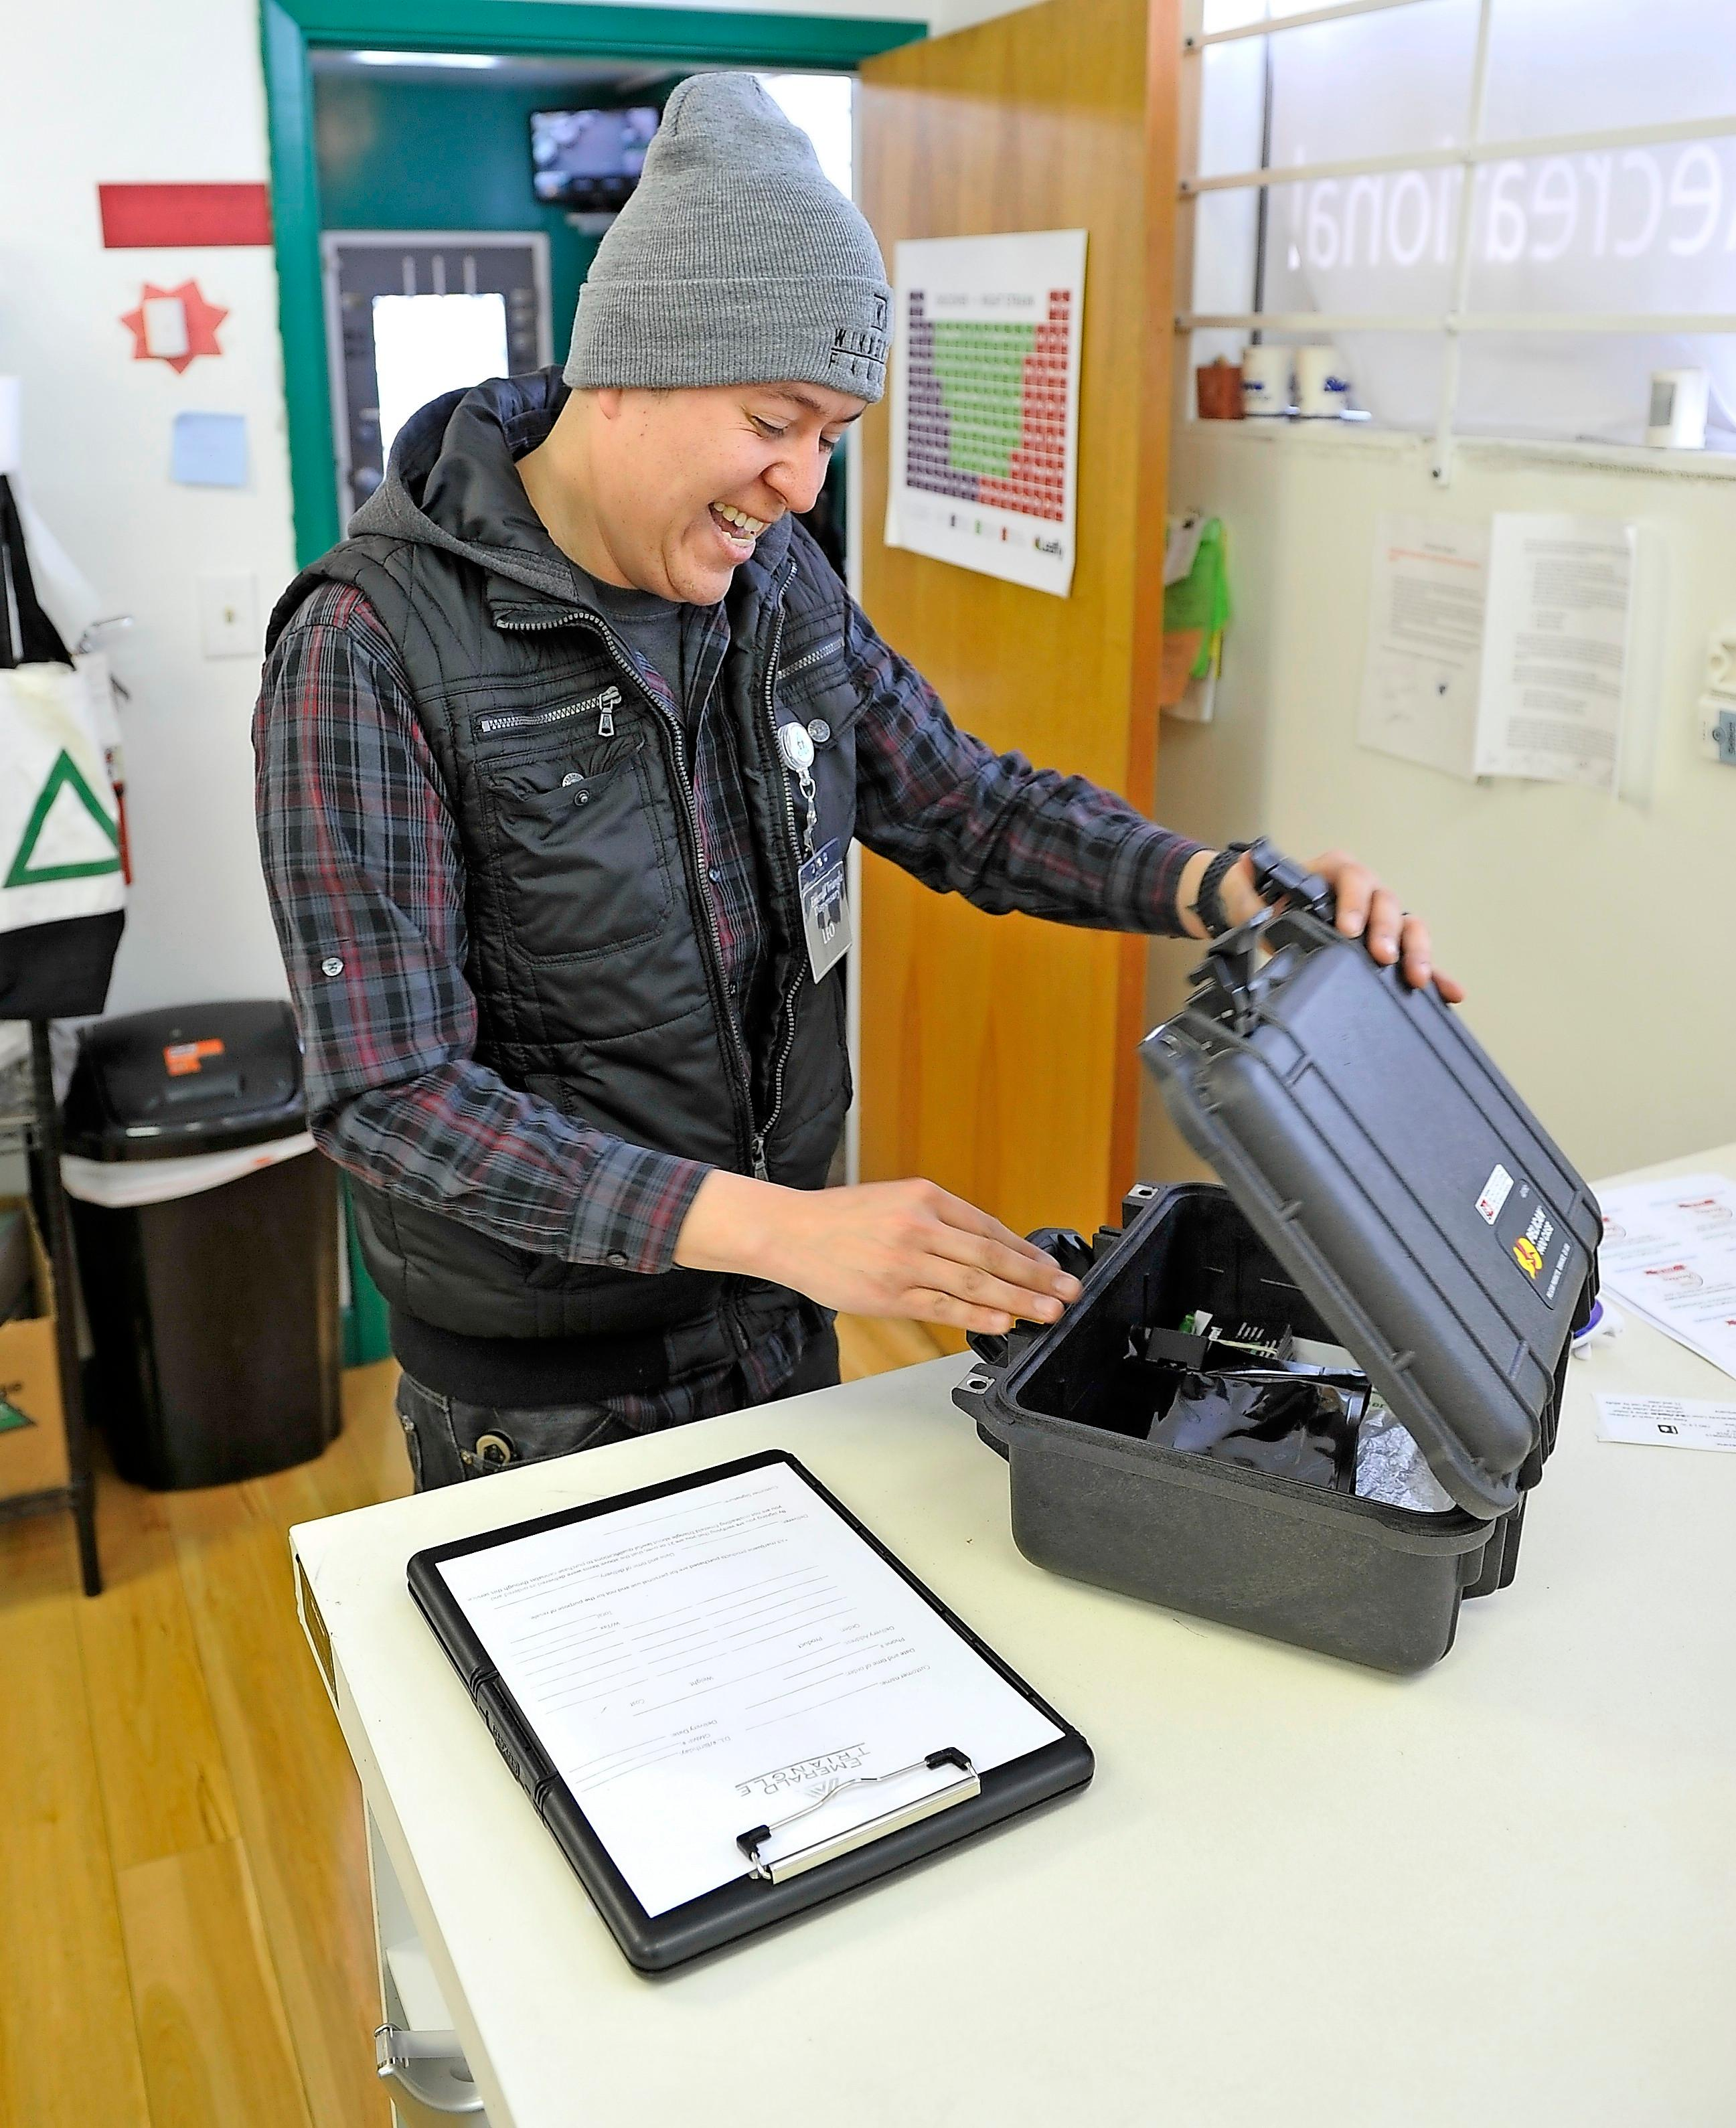 Leo Silva, bud tender at Emerald Triangle Dispensary in Medford, prepares for a delivery. - JAMIE LUSCH / MAIL TRIBUNE